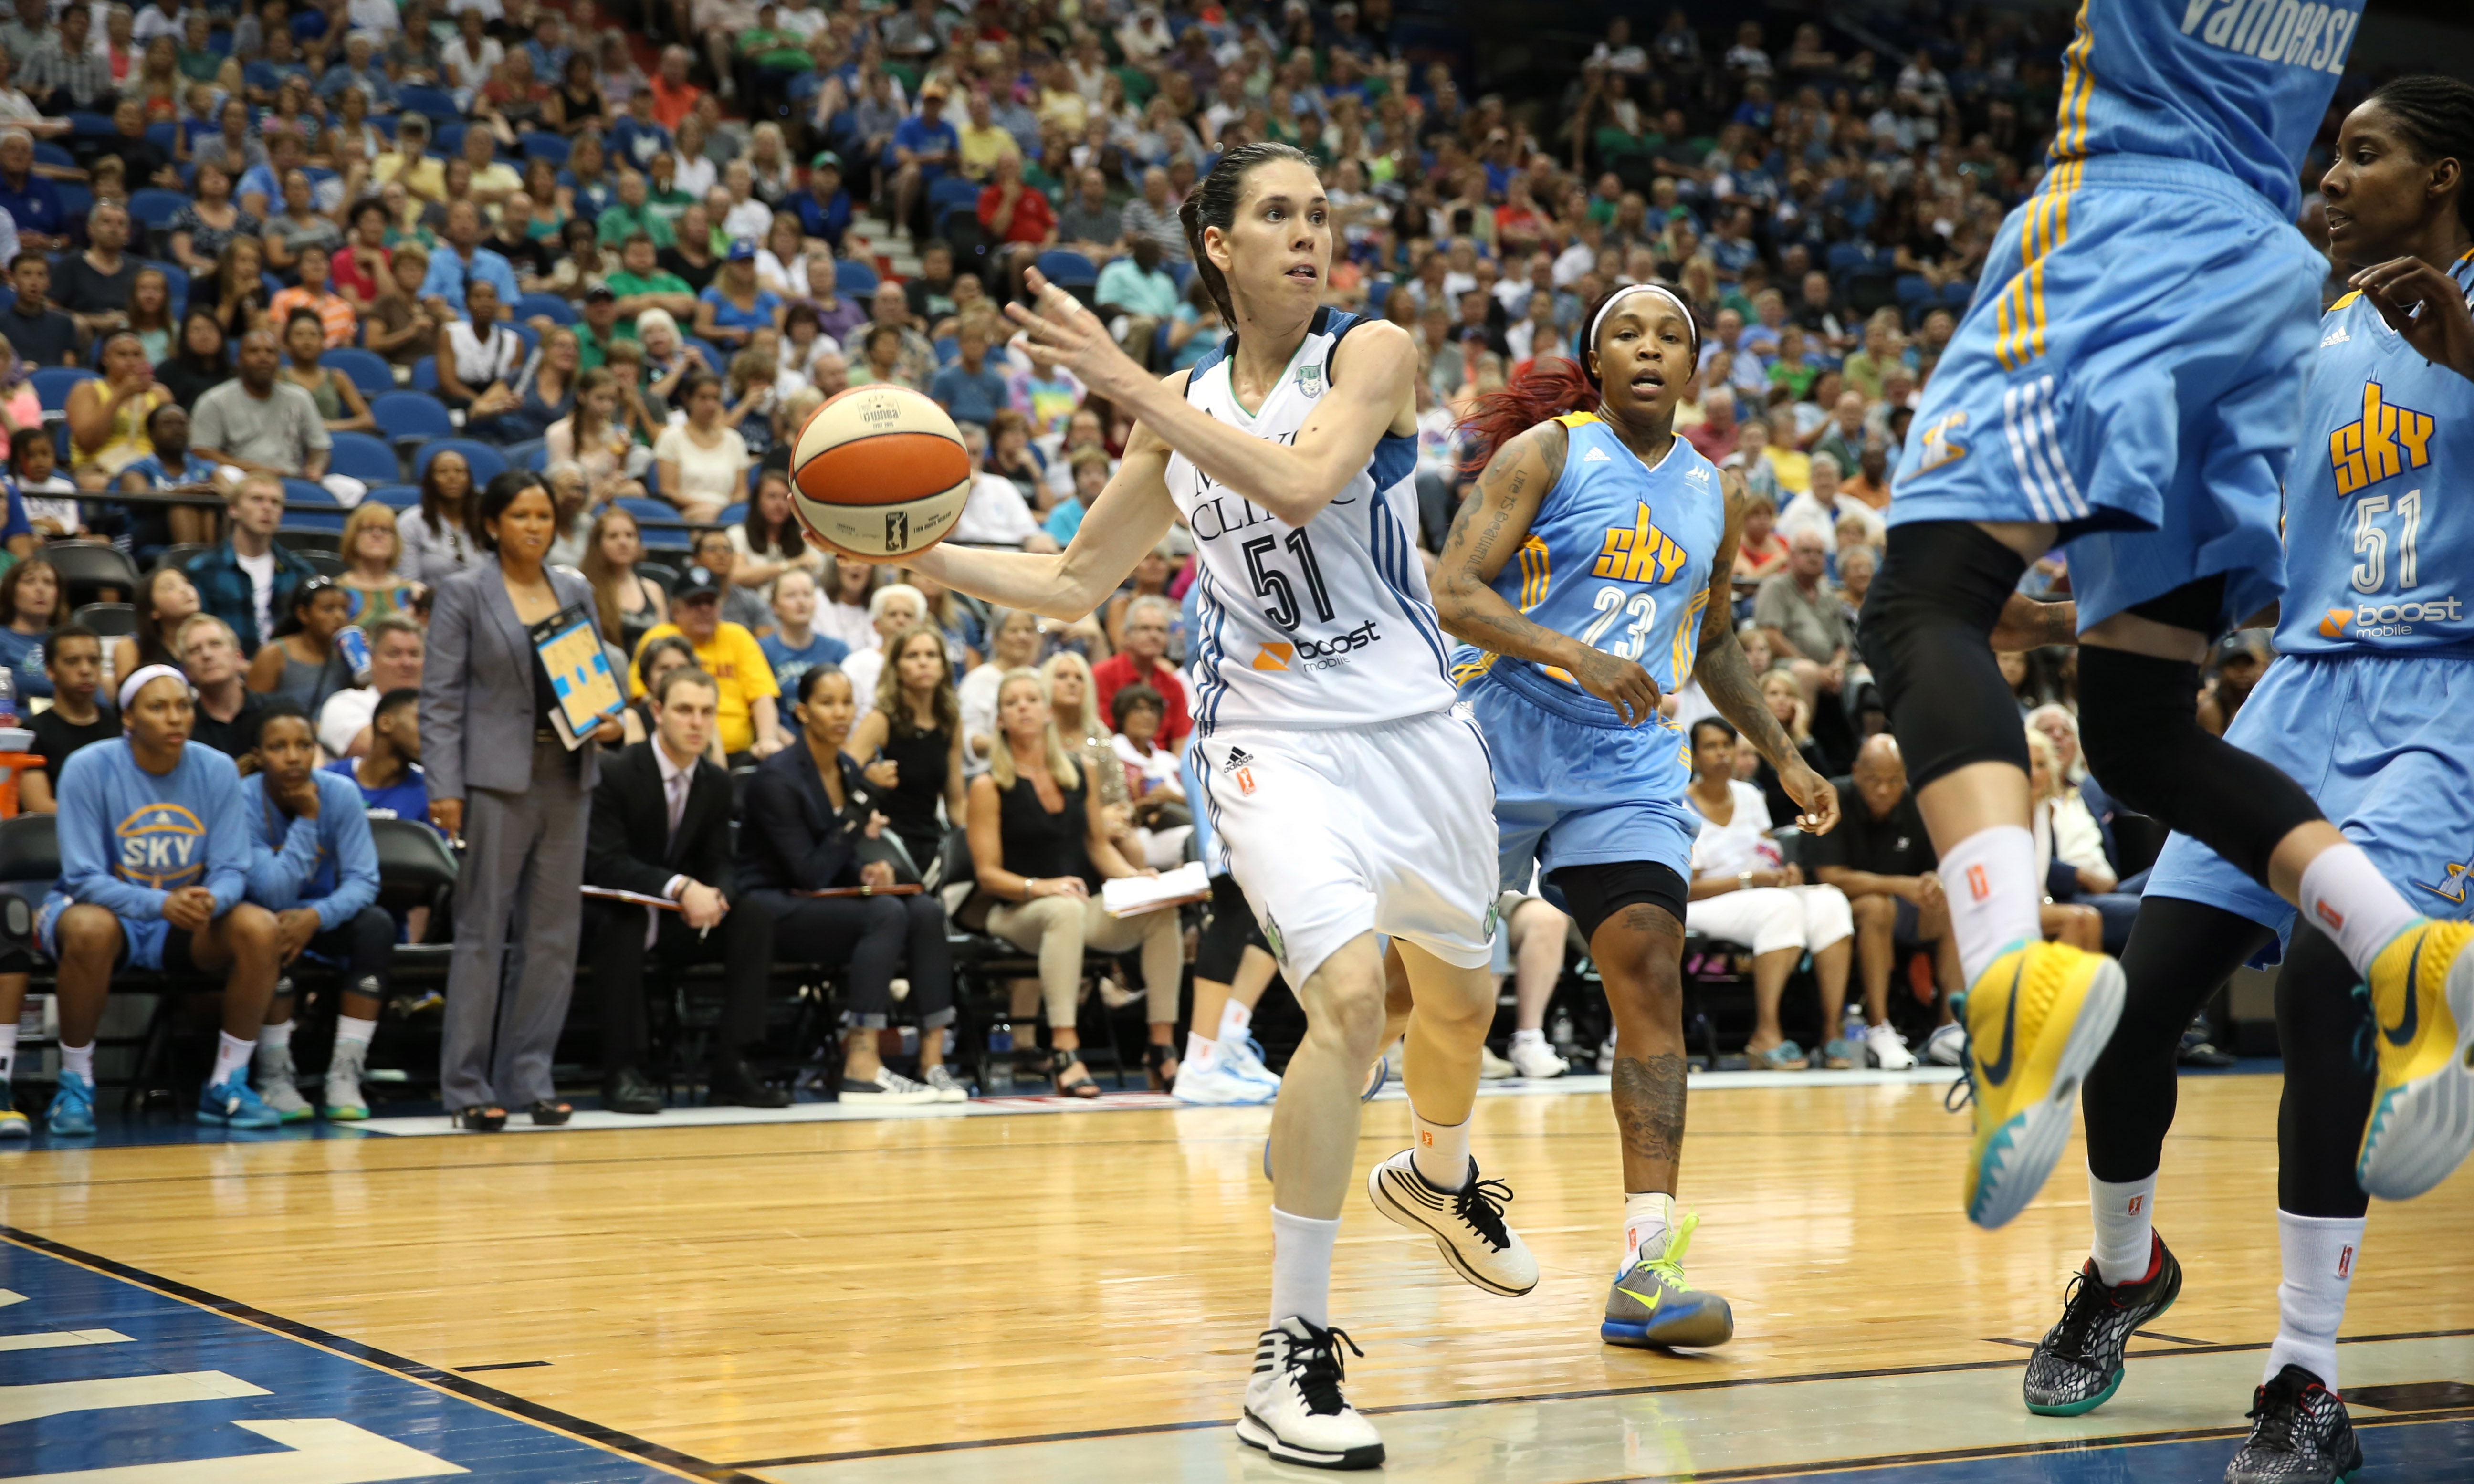 Lyx guard Anna Cruz was a huge reason for the Lynx victory last night. Starting in place of the injured Seimone Augustus, Cruz finished with 16 points, eight rebounds and five assists.